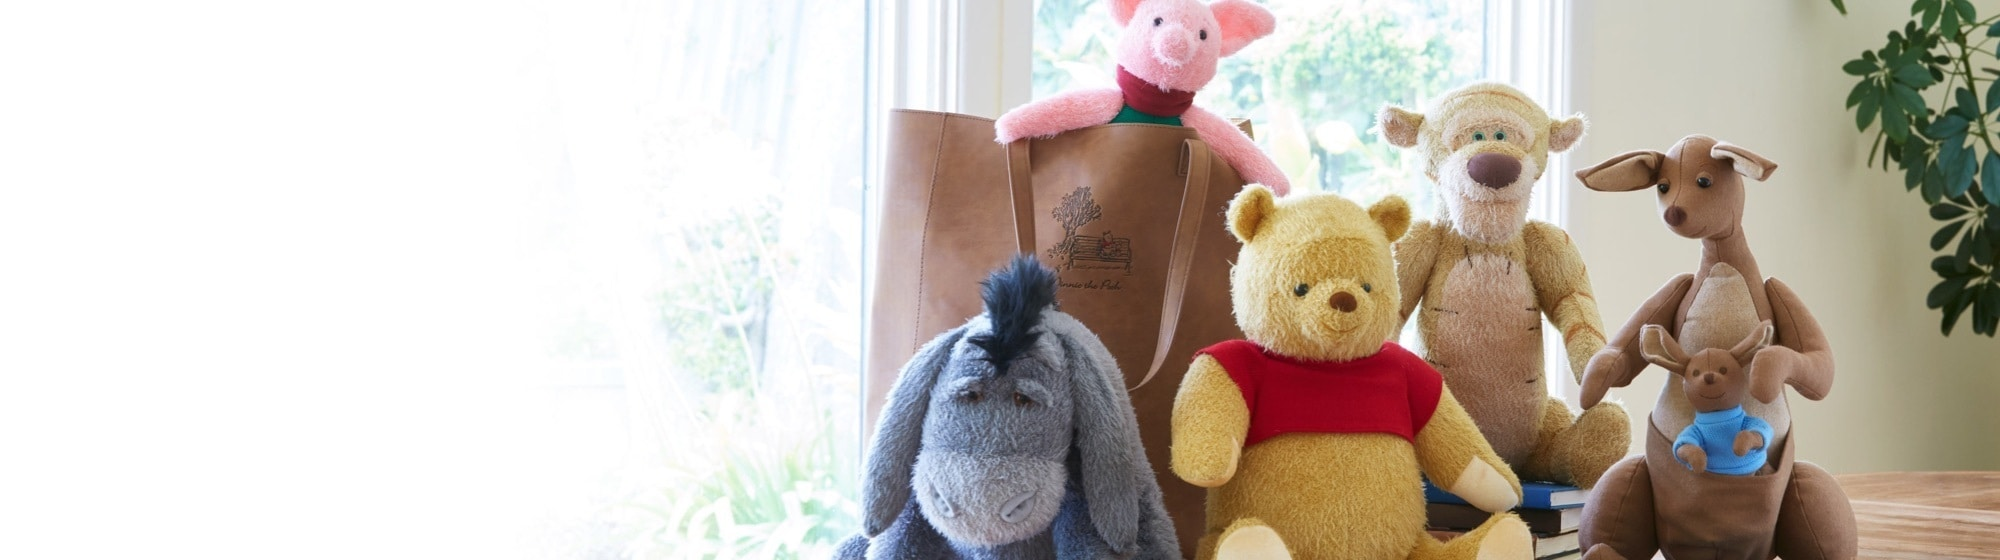 Find out more about Christopher Robin products on shopDisney